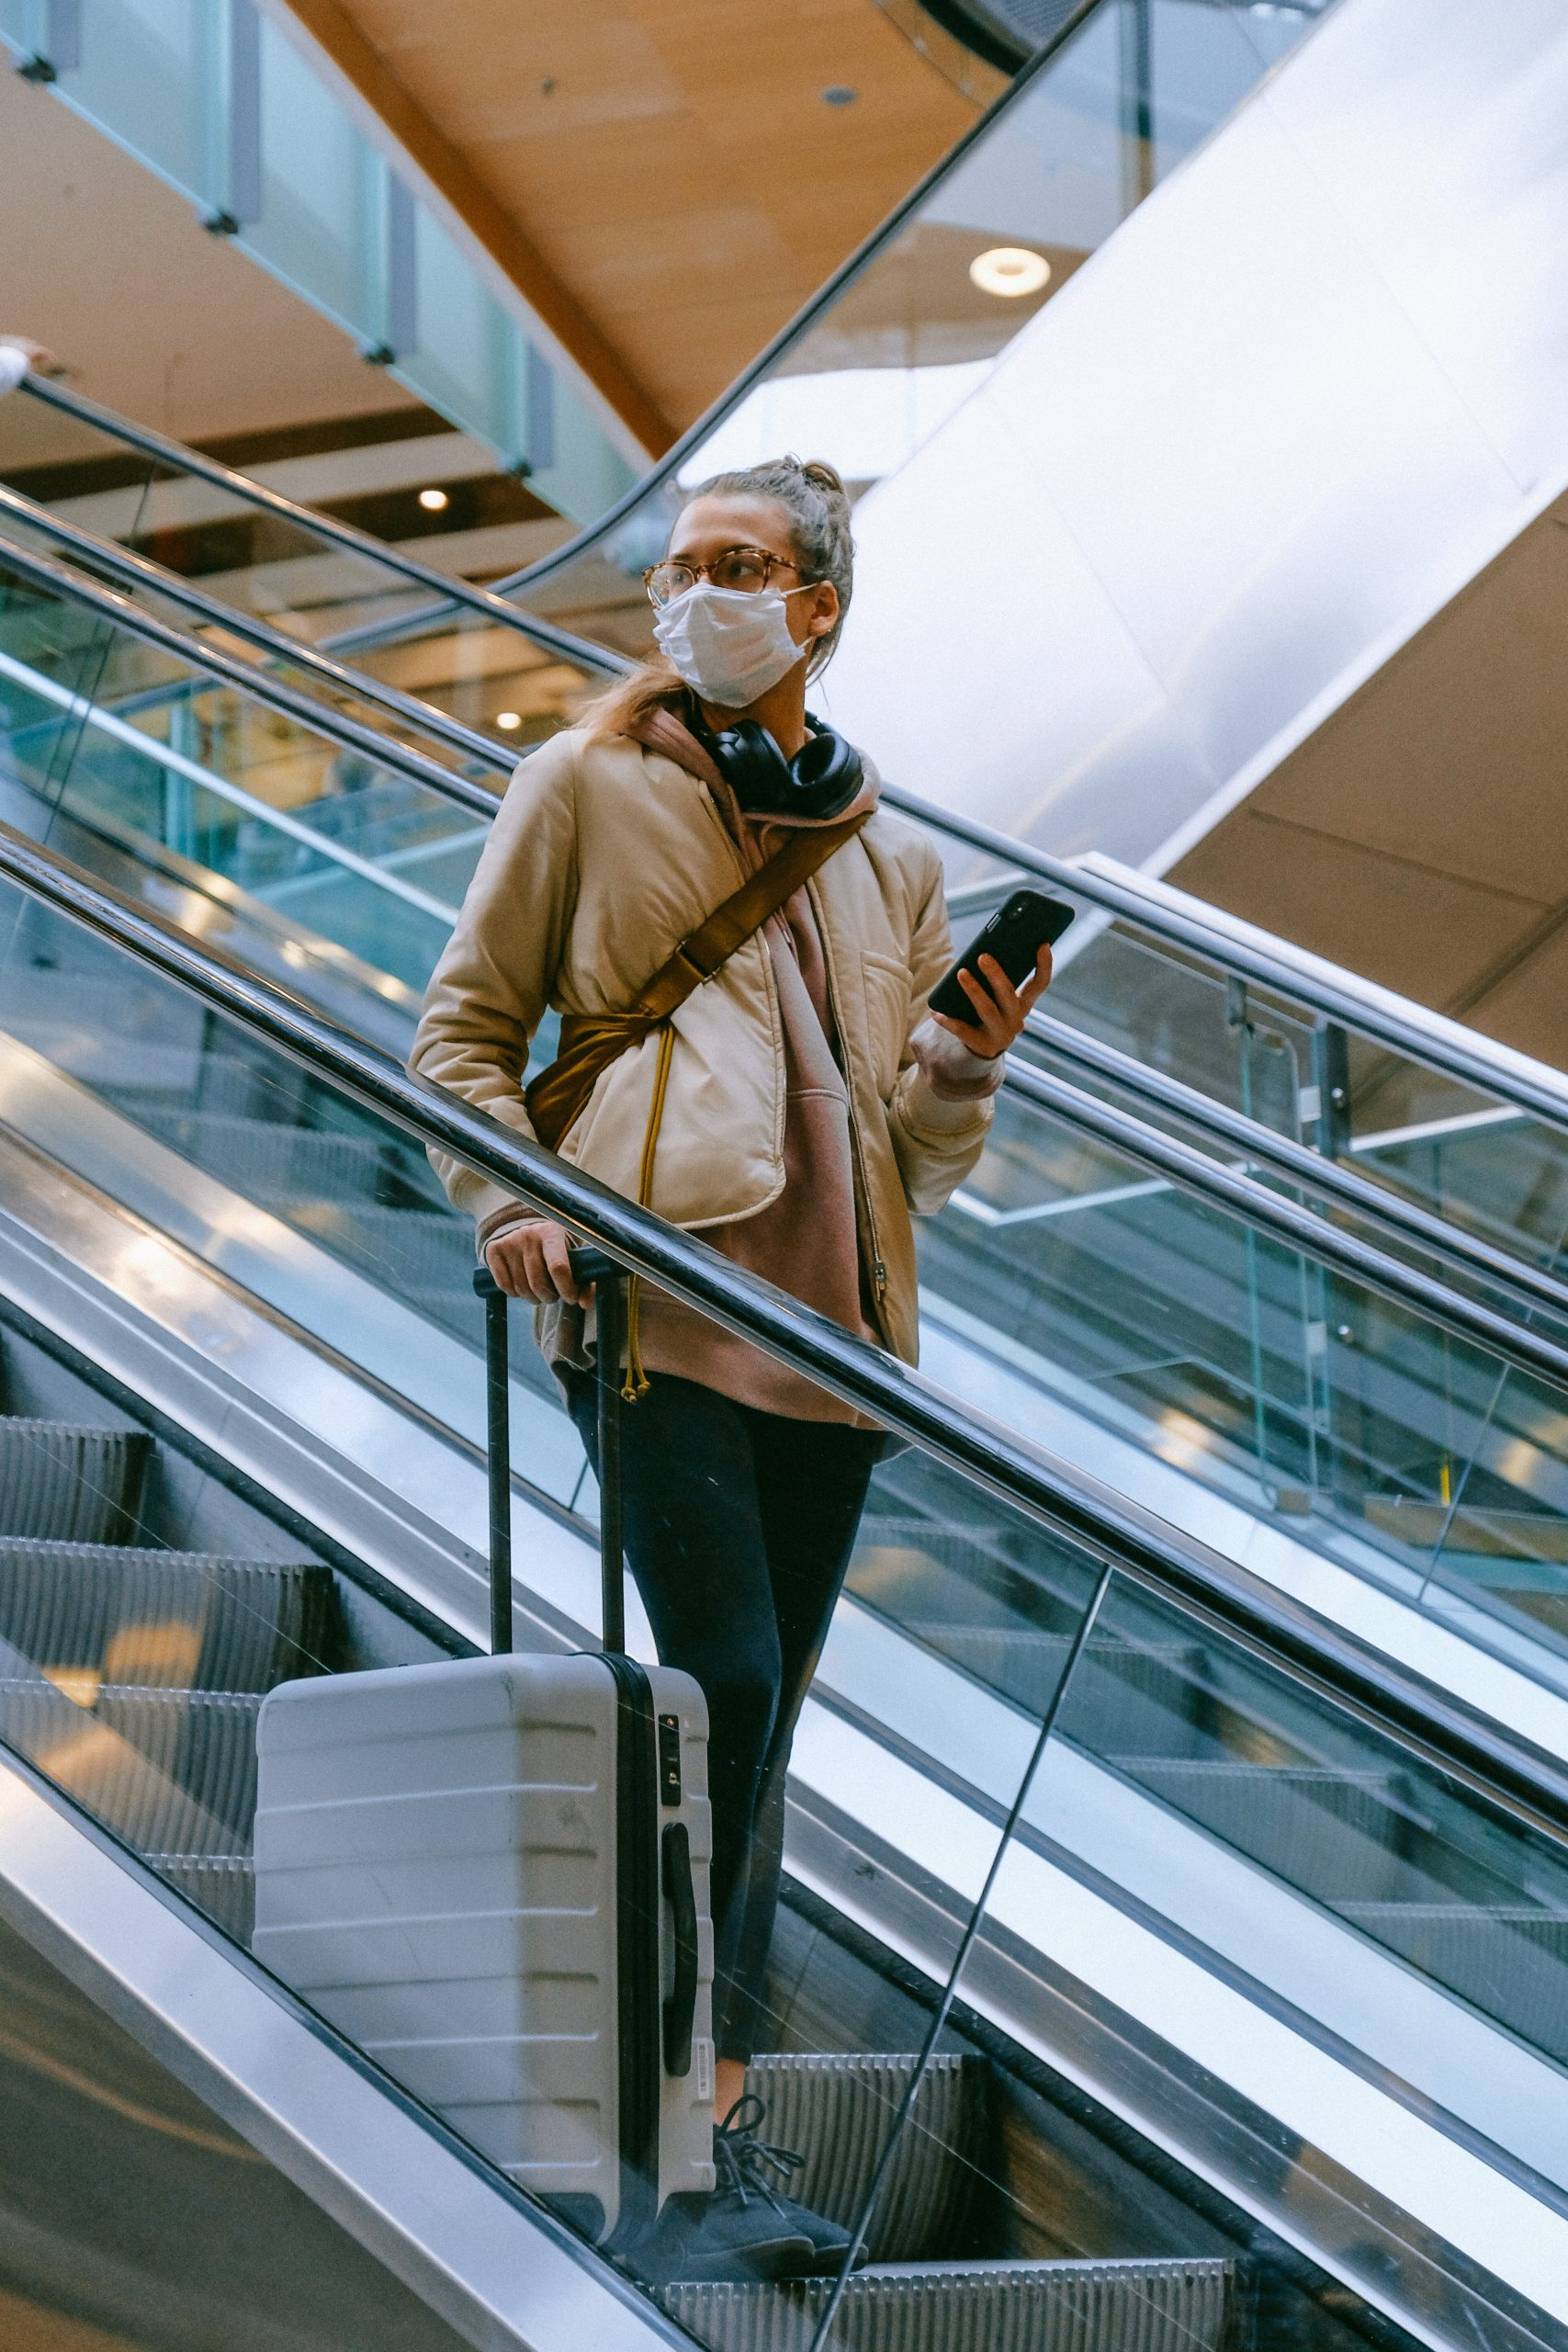 Woman at airport - How To Travel Safely During The Pandemic